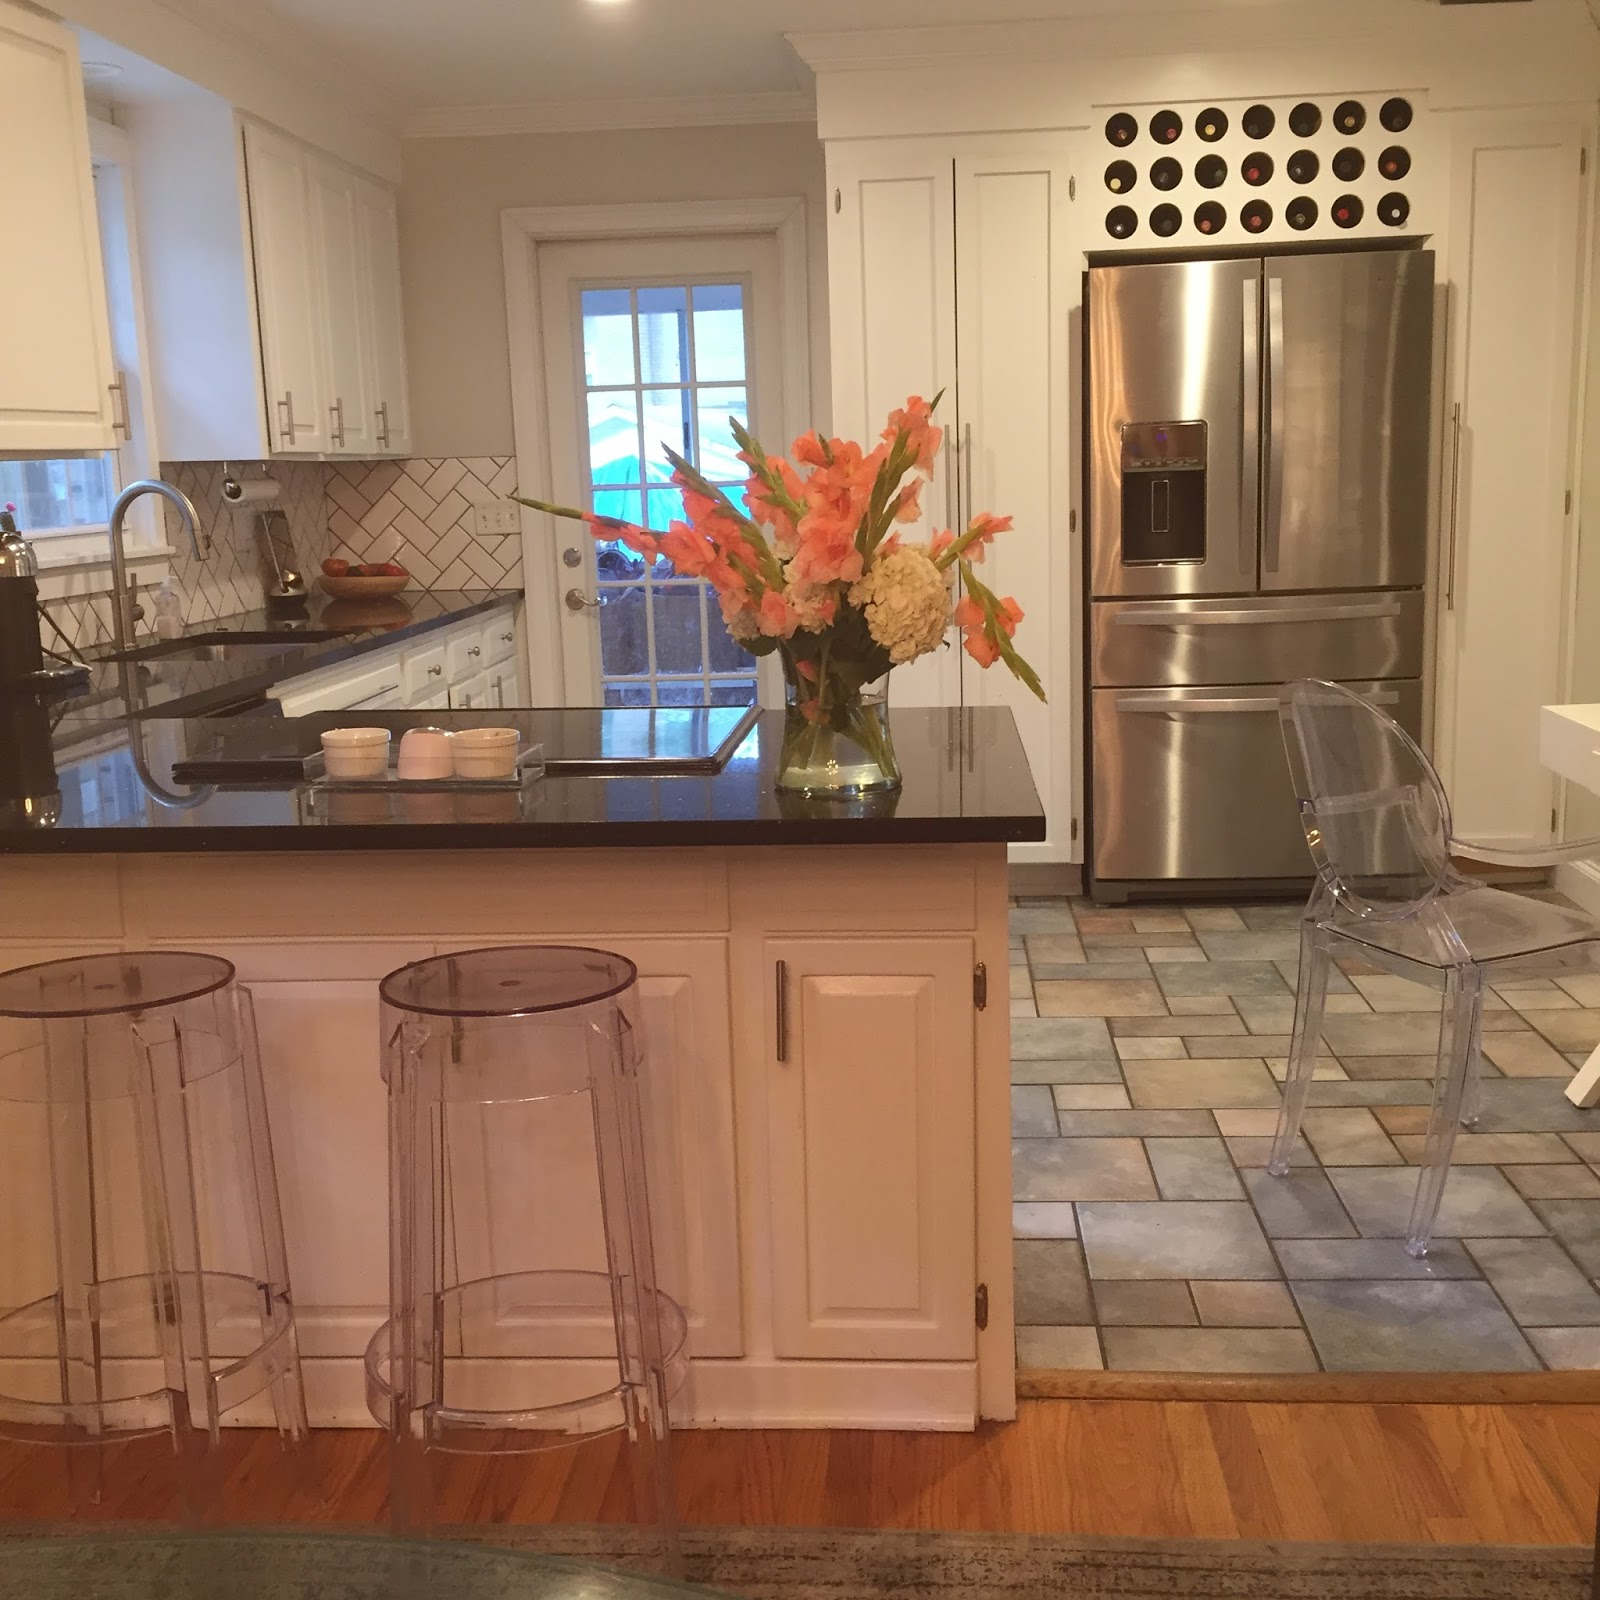 It Opens Right Into Our Dining Room After Knocking Down The Cabinet In Middle I Was Able To Buy Bar Stools And Use Counter Tops As An Island